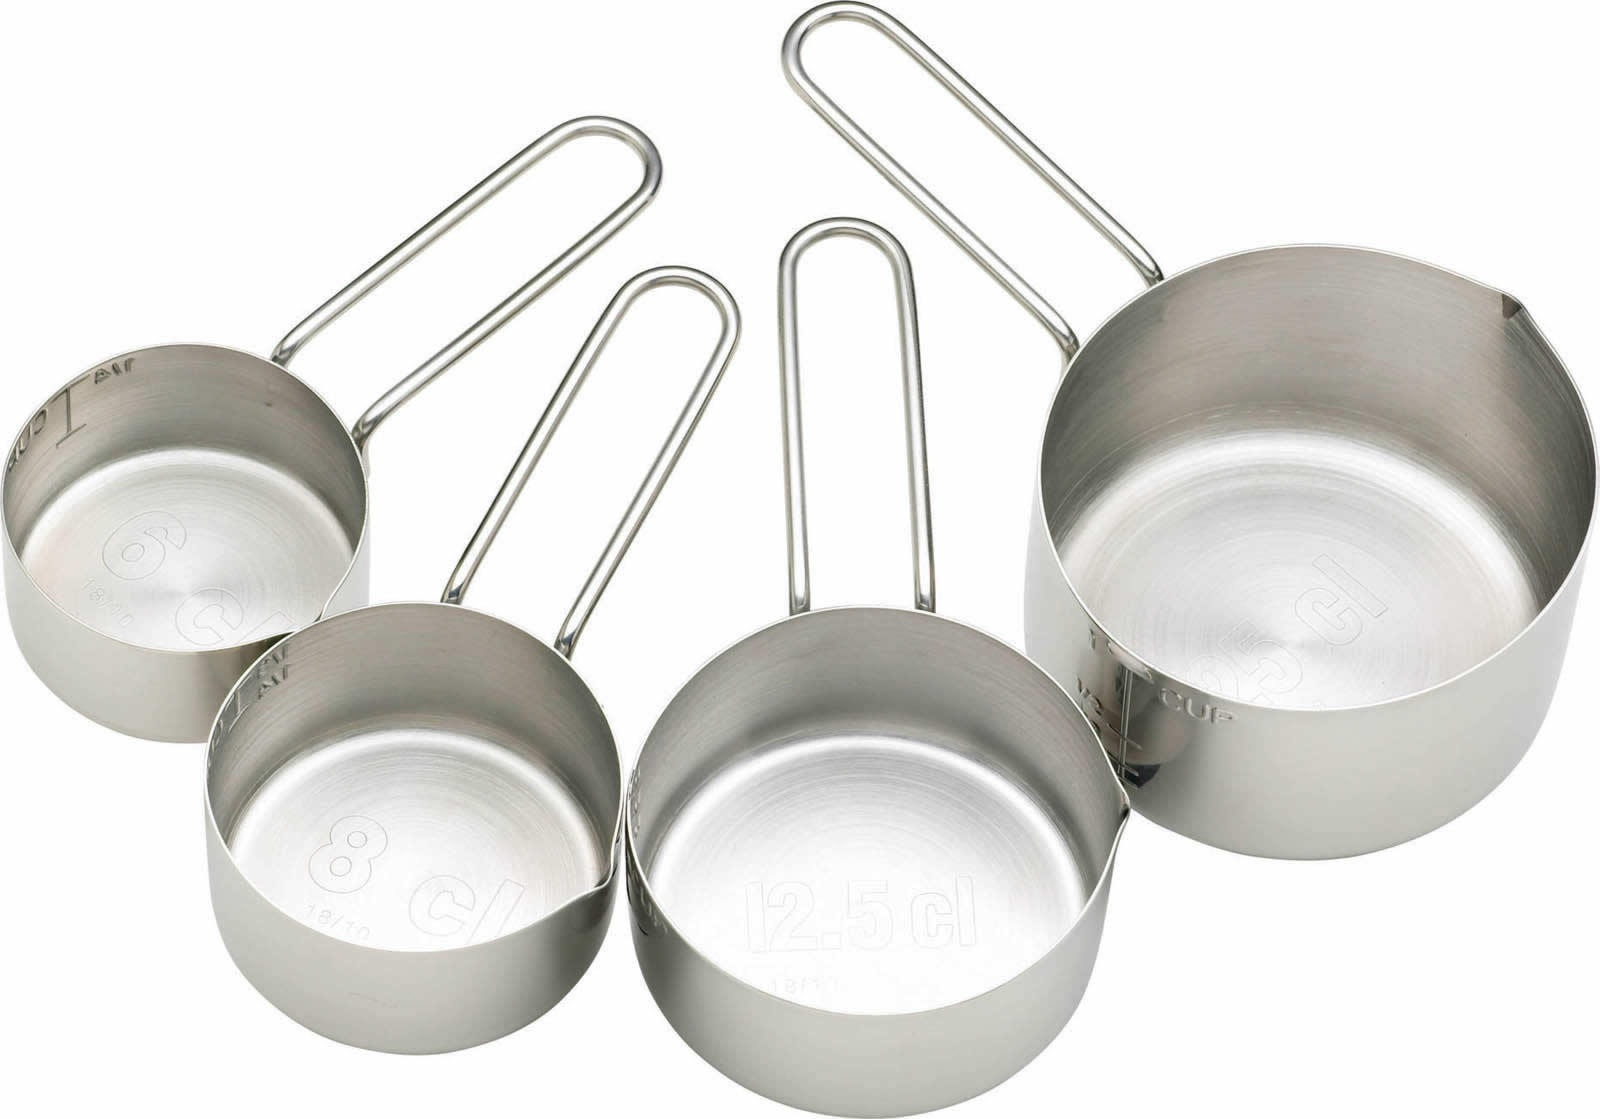 Masterclass stainless steel 4 piece measuring cup set for Harga kitchen set stainless per meter